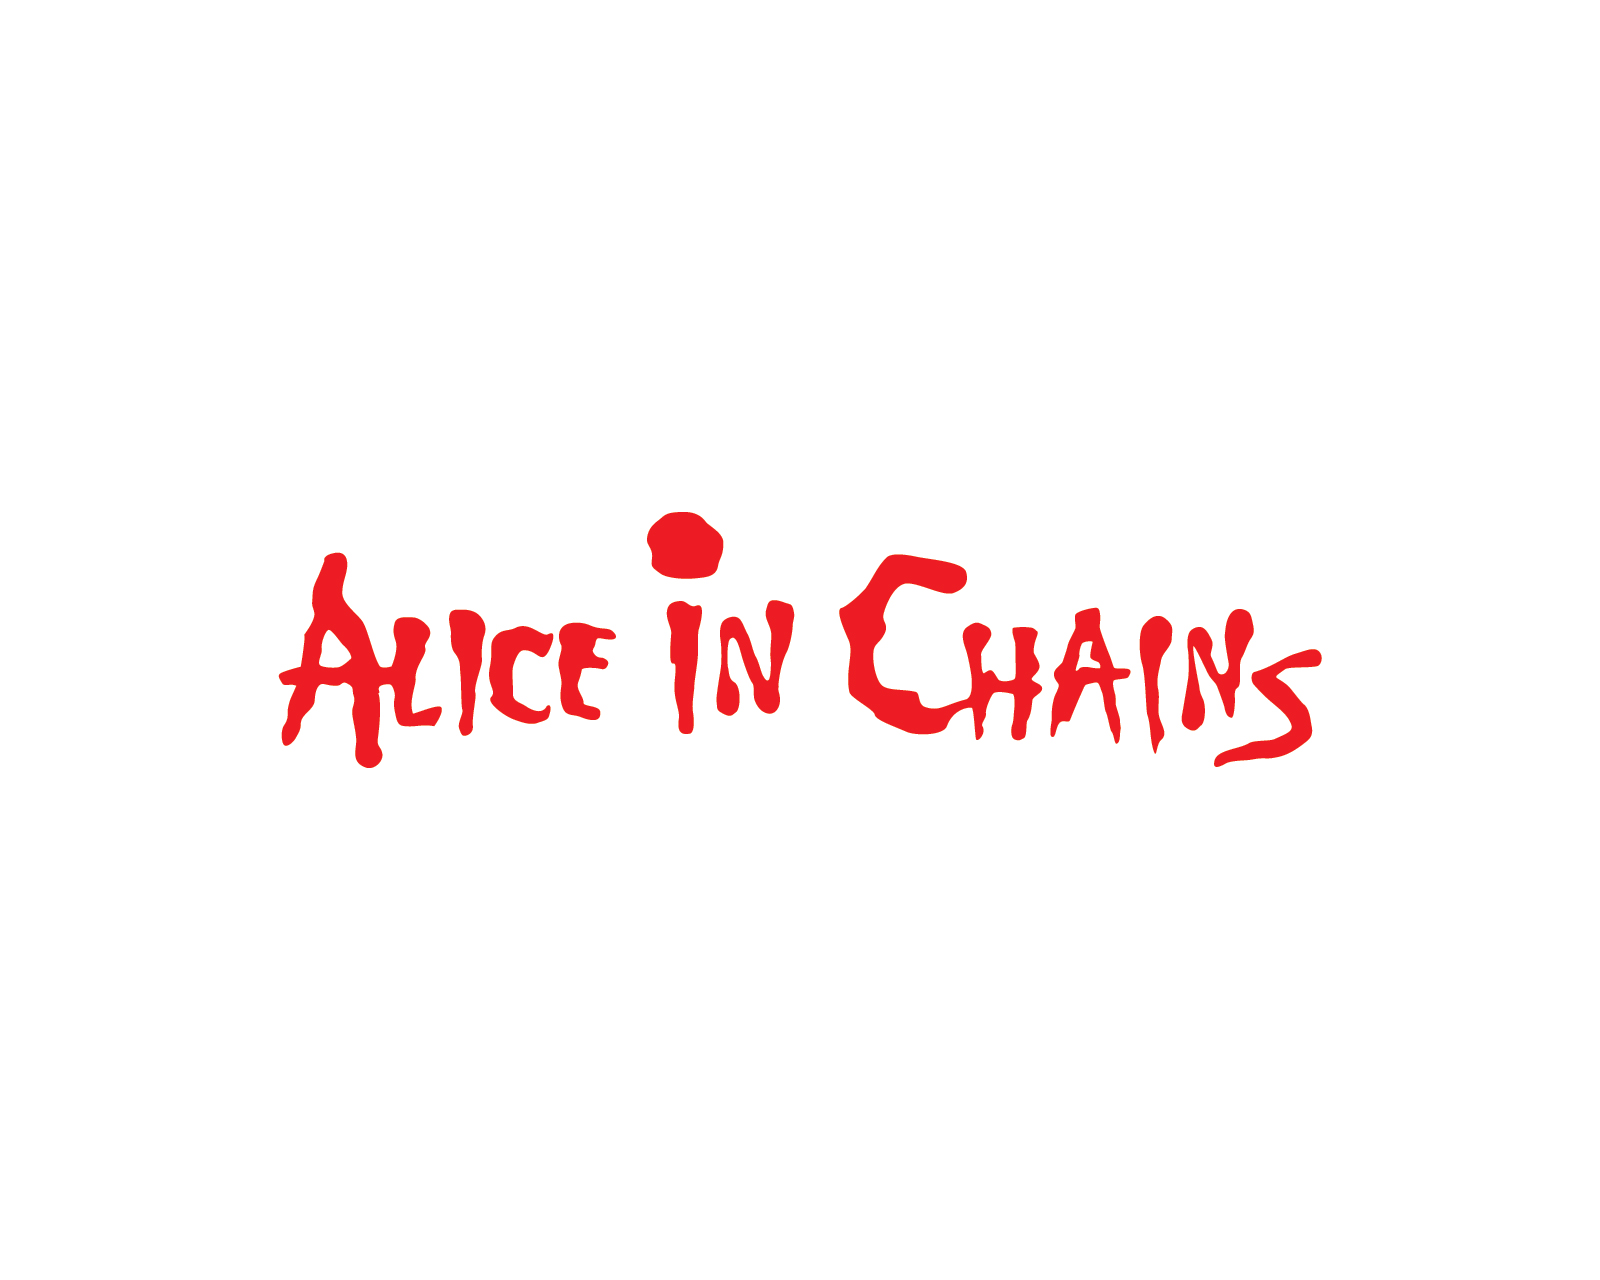 Alice-in-Chains-wallpaper-wp4401688